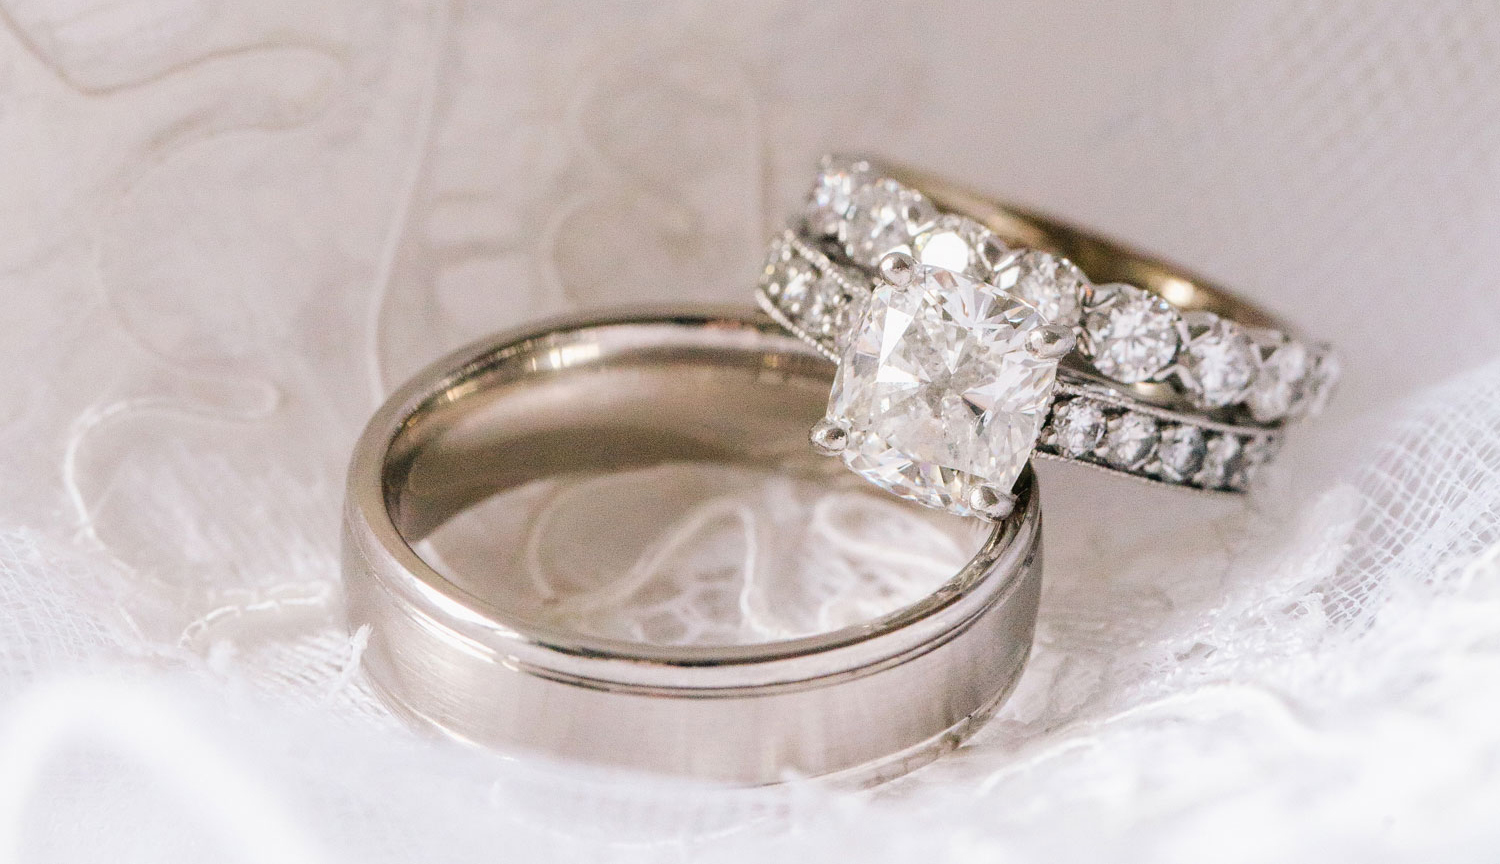 channel-set cushion-cut engagement ring with milgrain and wedding rings, steps to creating custom engagement ring